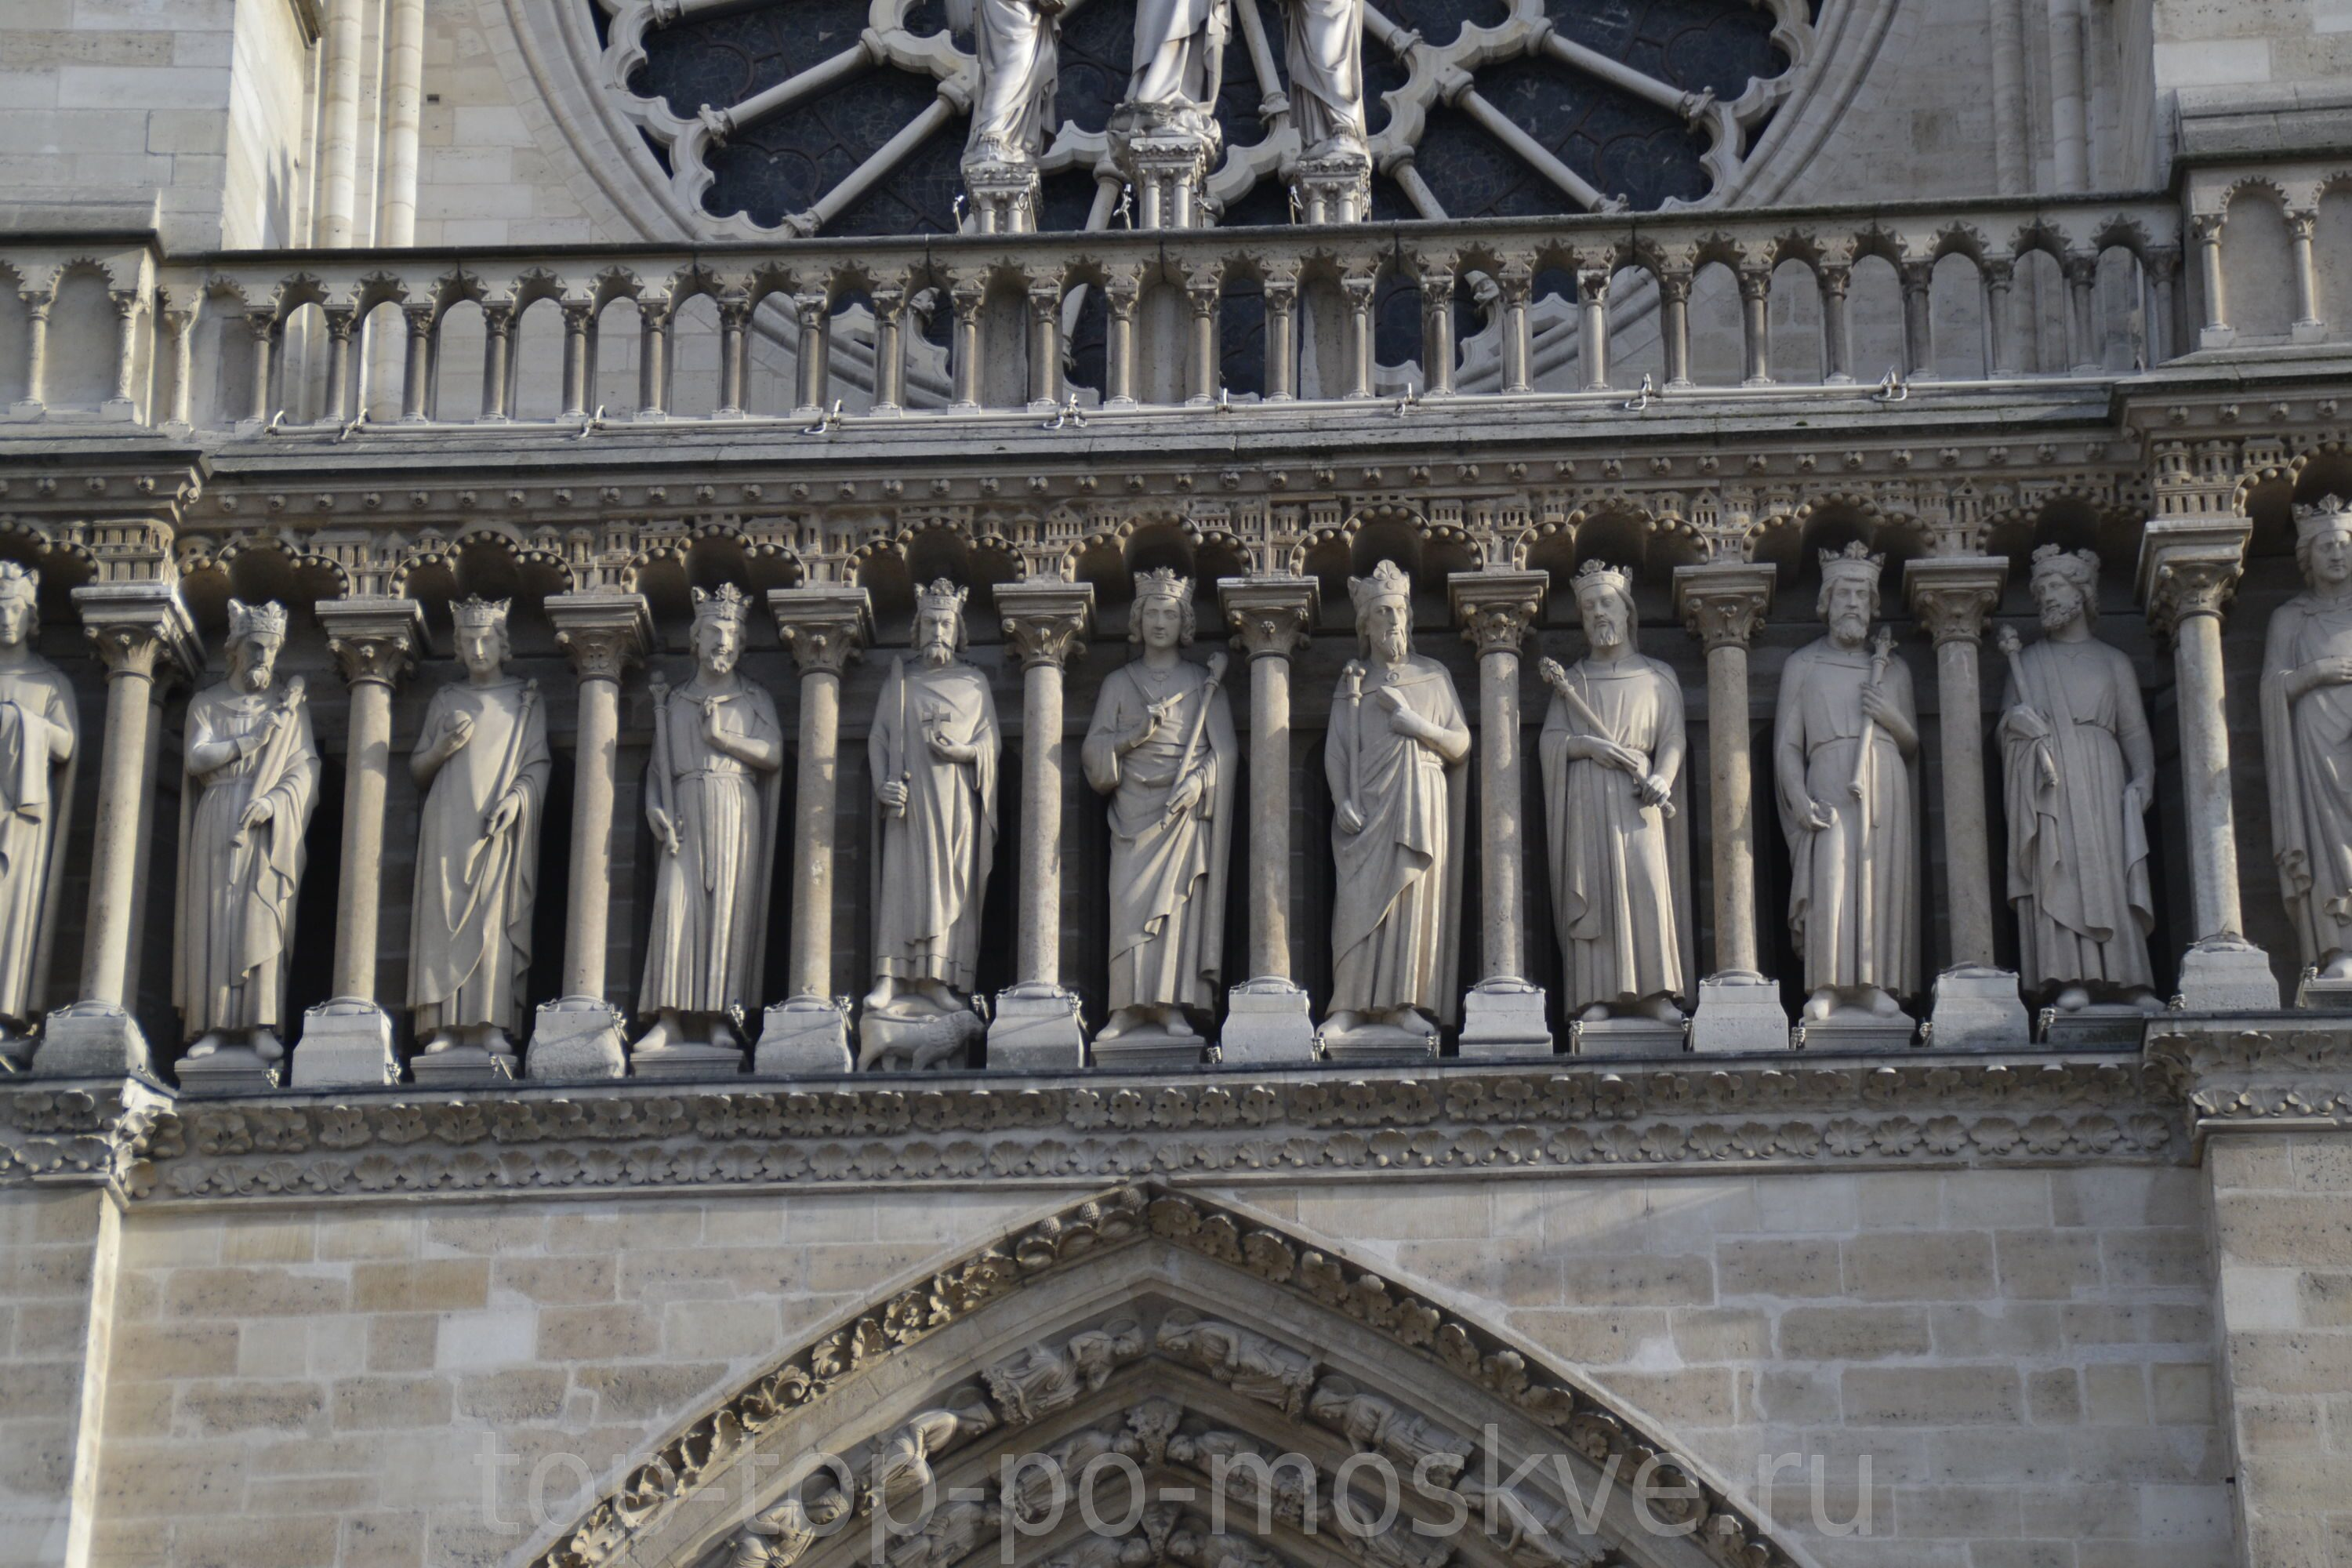 an analysis of notre dame de paris During the ancien regime, notre-dame de paris did not host great occasions this function was performed rather by other religious edifices in the capital and surrounding area – the sainte-chapelle was the receptacle of the crown of thorns brought back by saint louis, the cathedral at reims was used for the coronation of the kings, [].